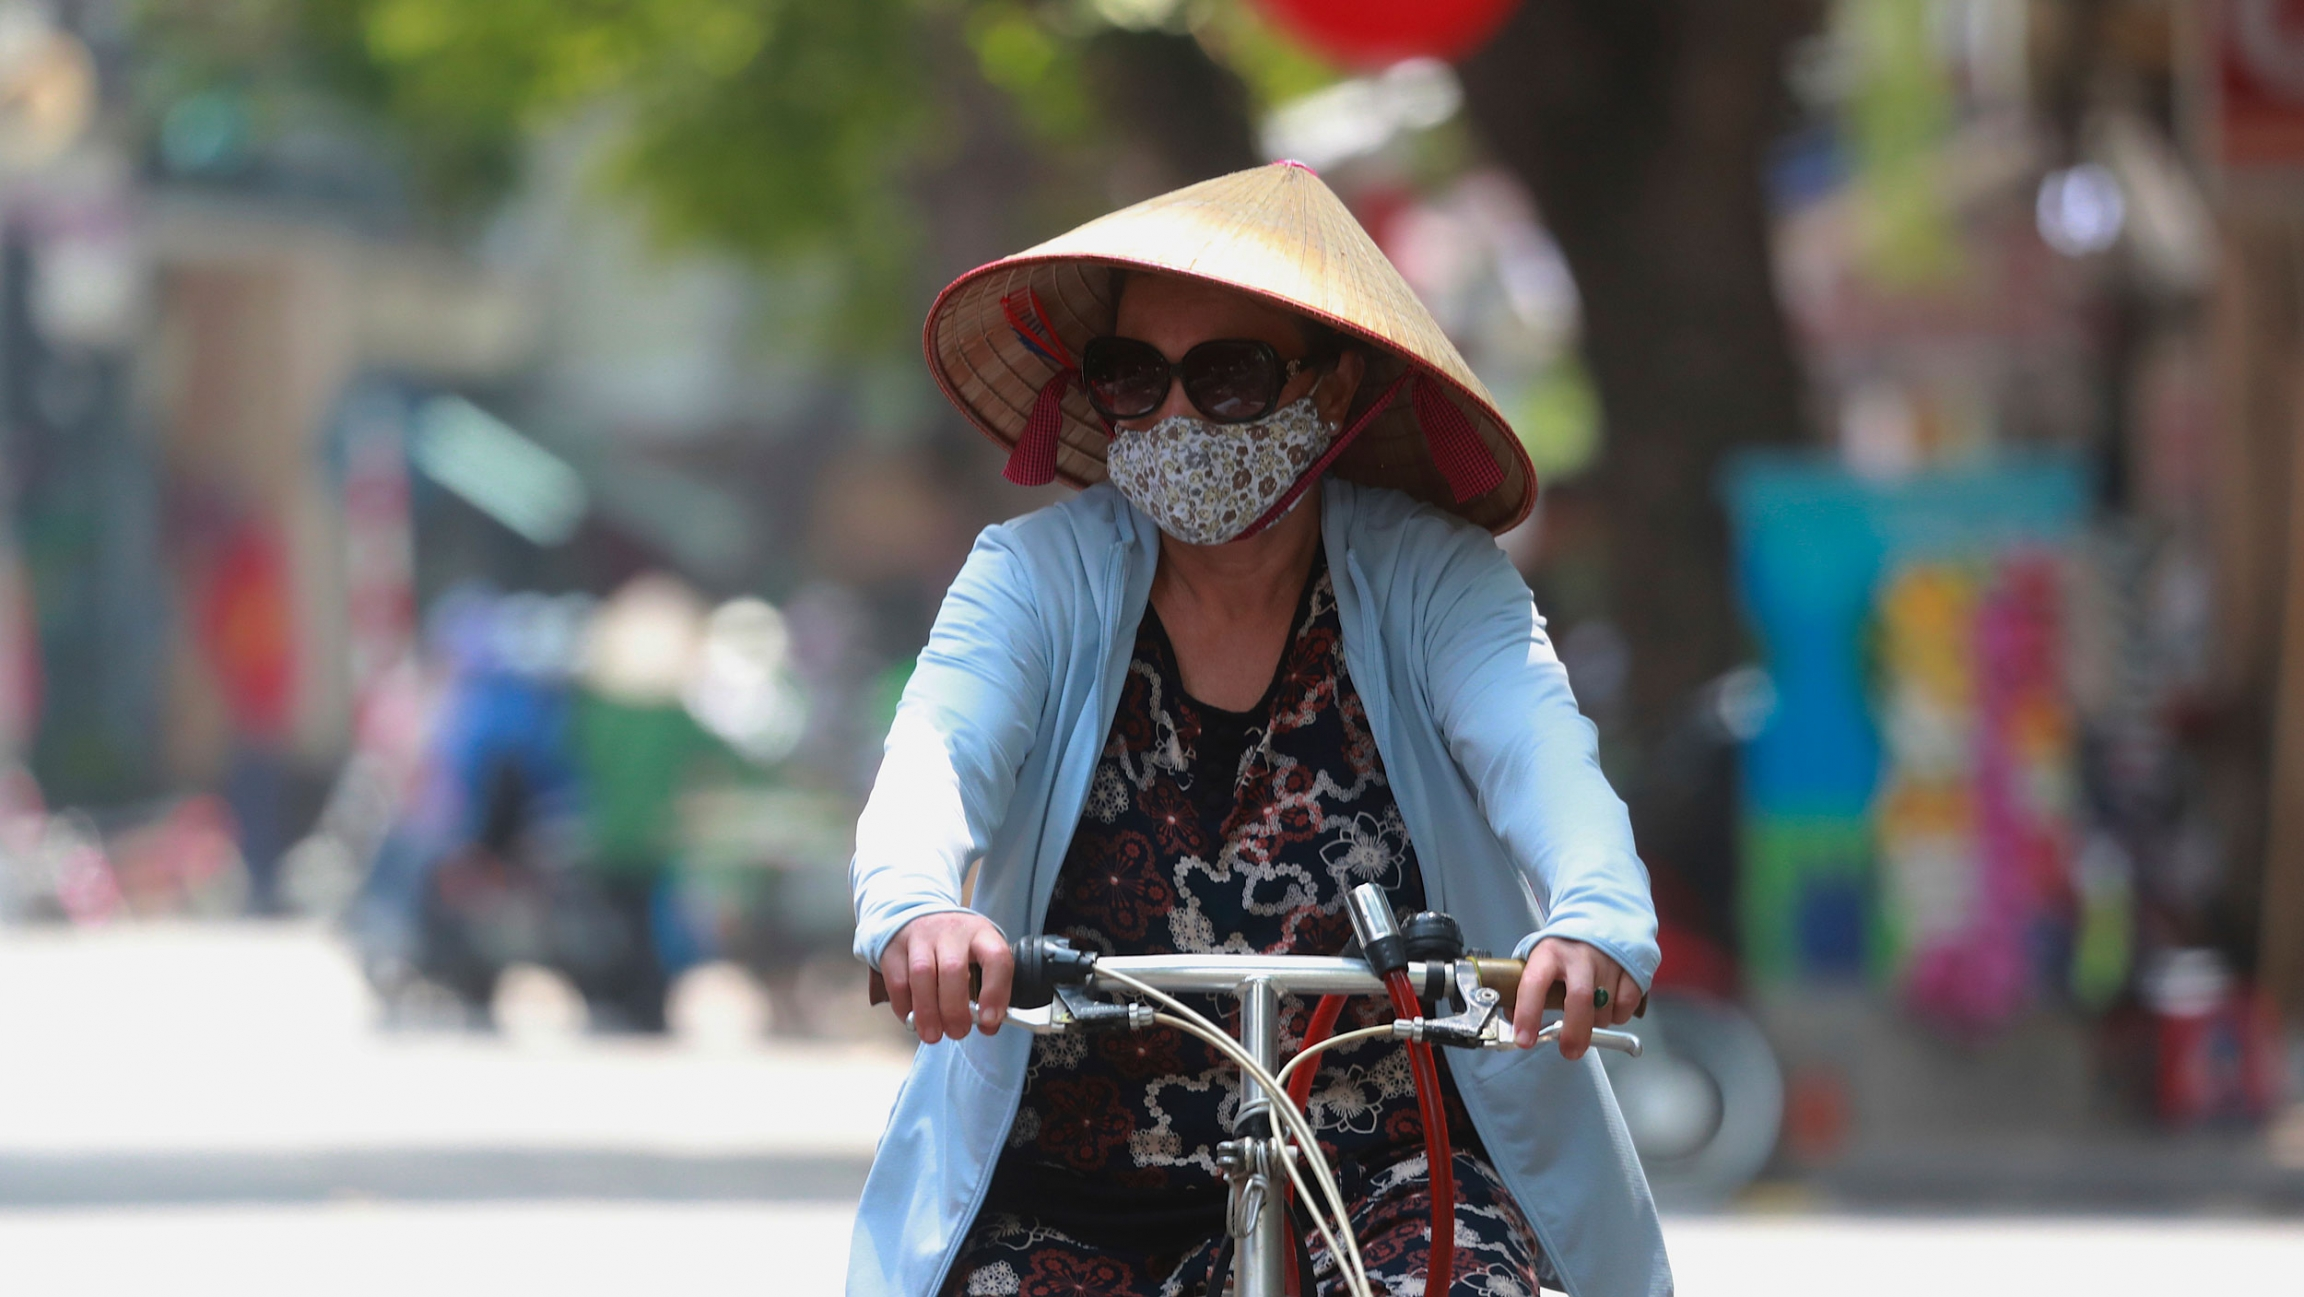 A woman is shown wearing a blue jacket, sunglasses, face mask and a straw hat while writing a bicycle.